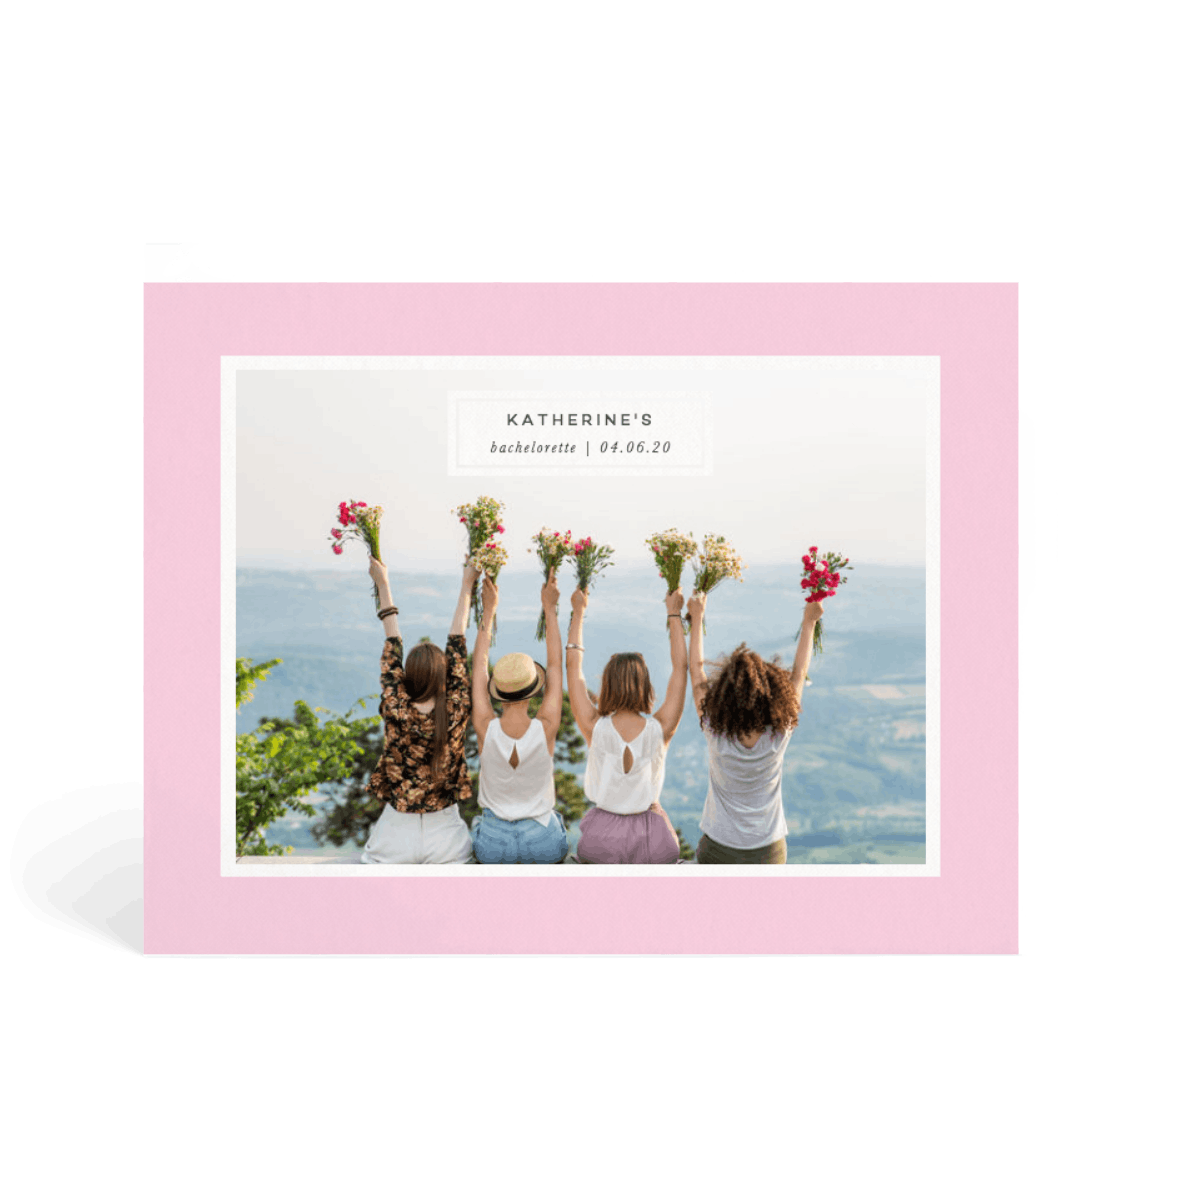 Https%3a%2f%2fwww.papier.com%2fproduct image%2f86374%2f28%2fframed colourblock 20197 front 1566394582.png?ixlib=rb 1.1